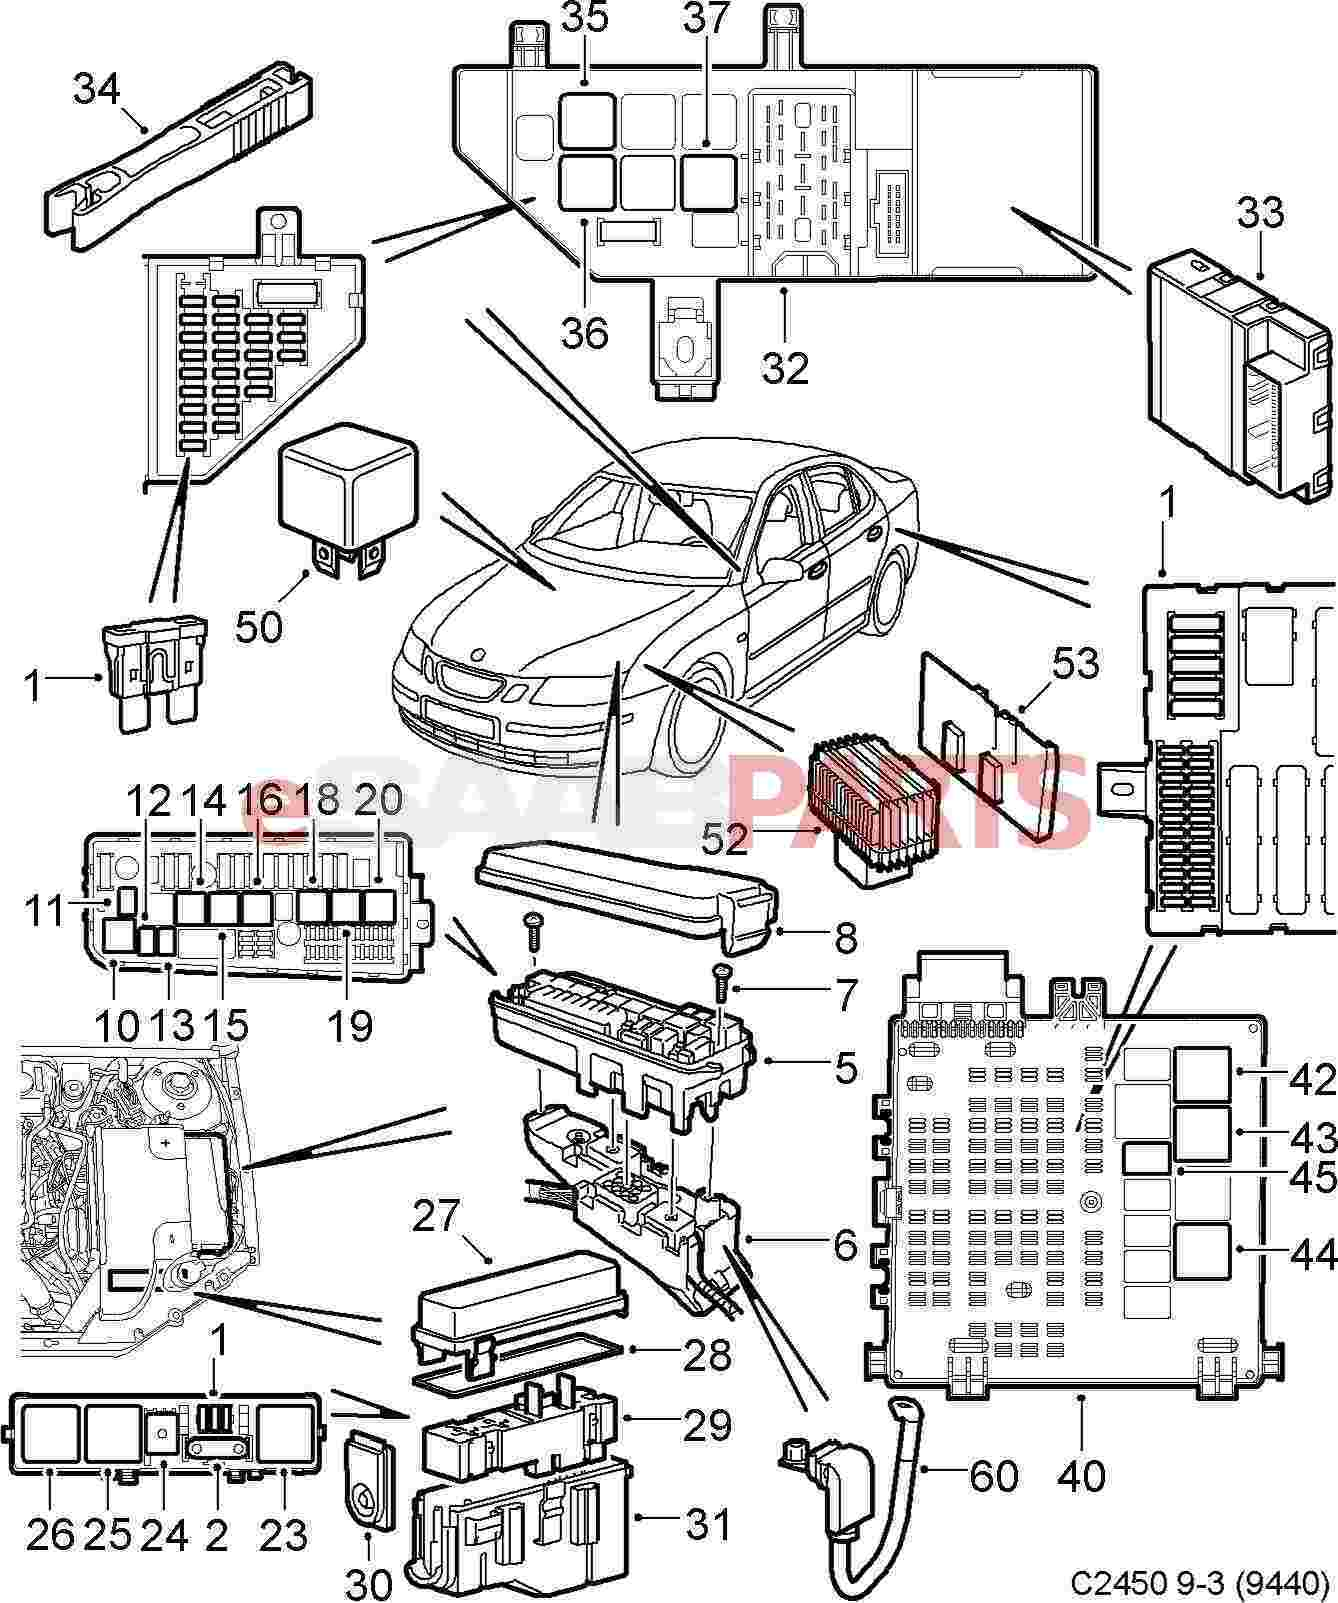 Saab 9 3 Headlight Wiring Diagram